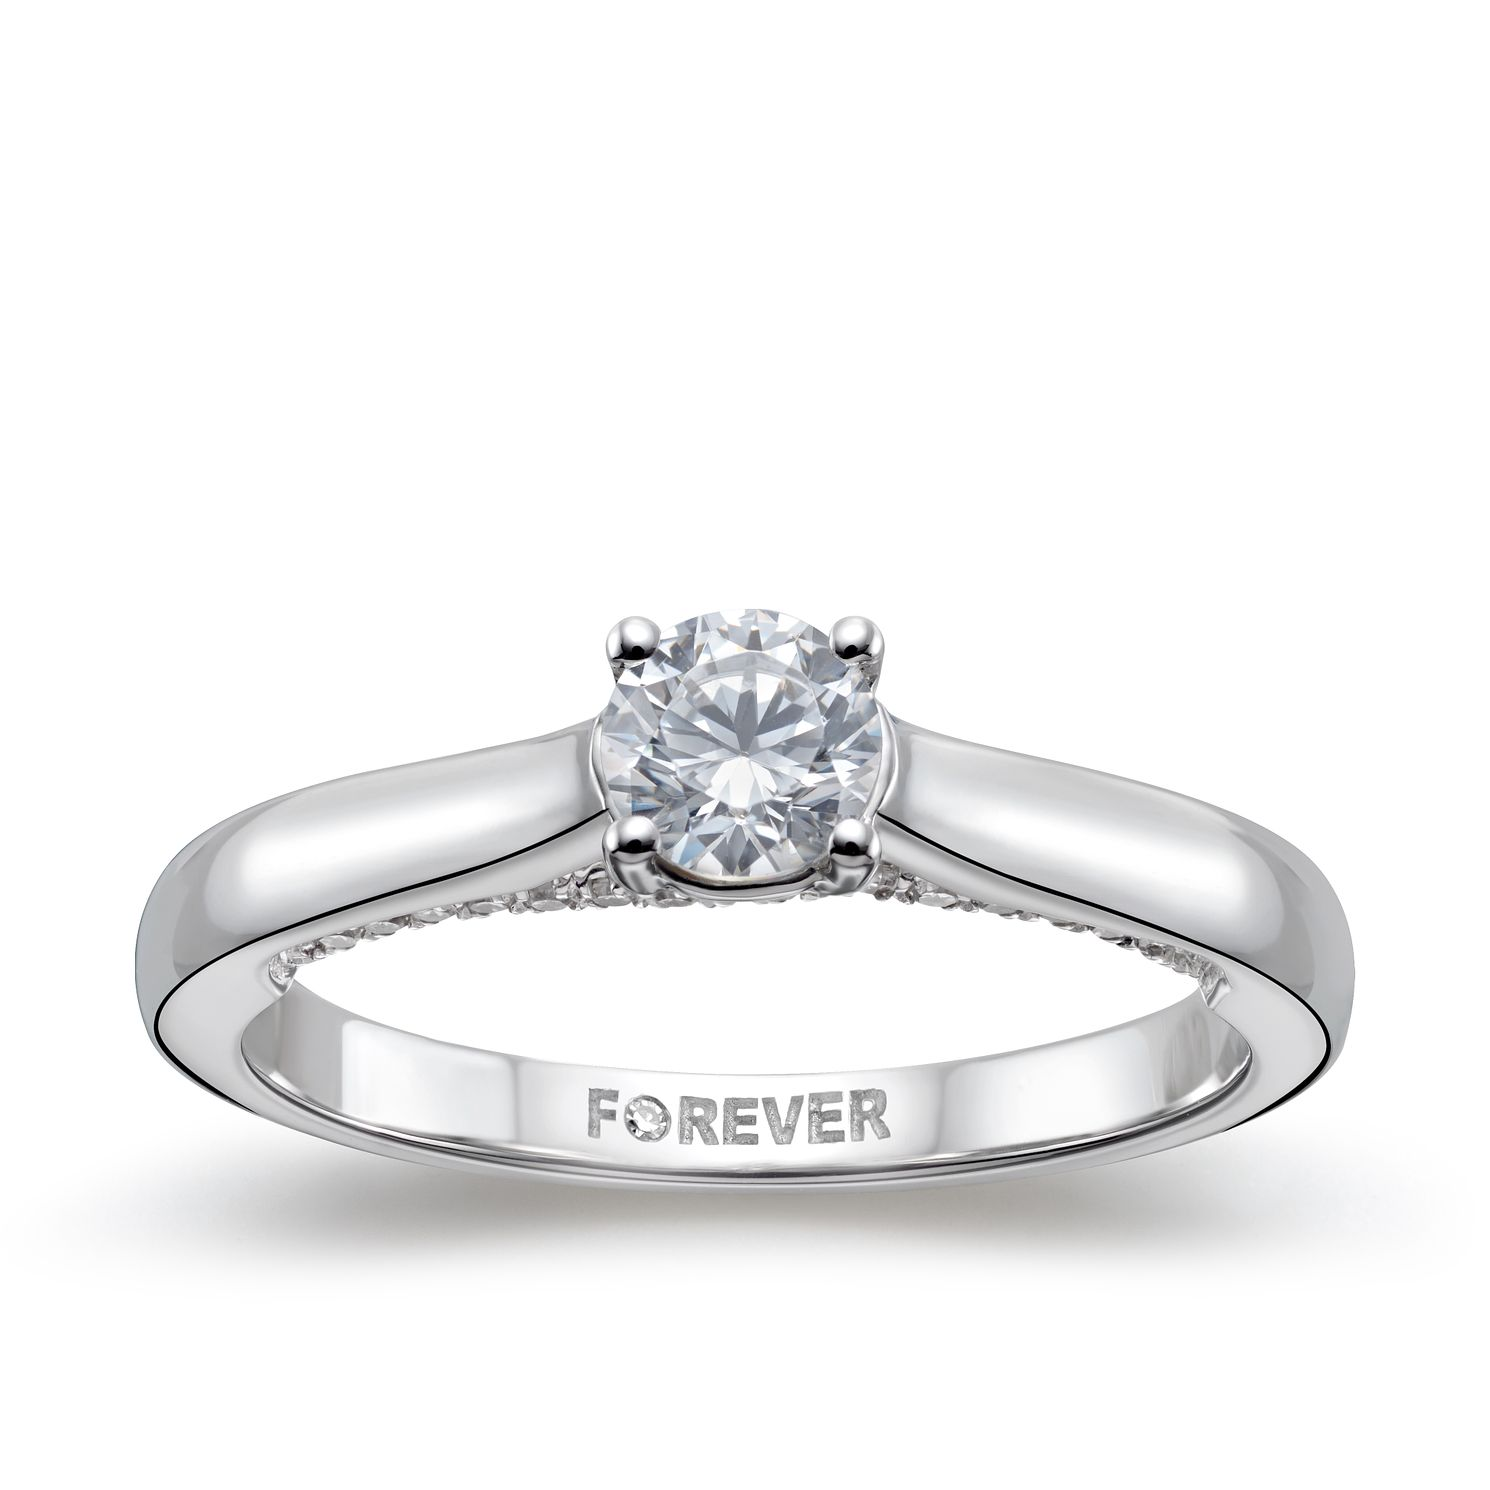 piece promise engagement on diamond wedding cynthiawestland one engagements images rings and bands best pinterest